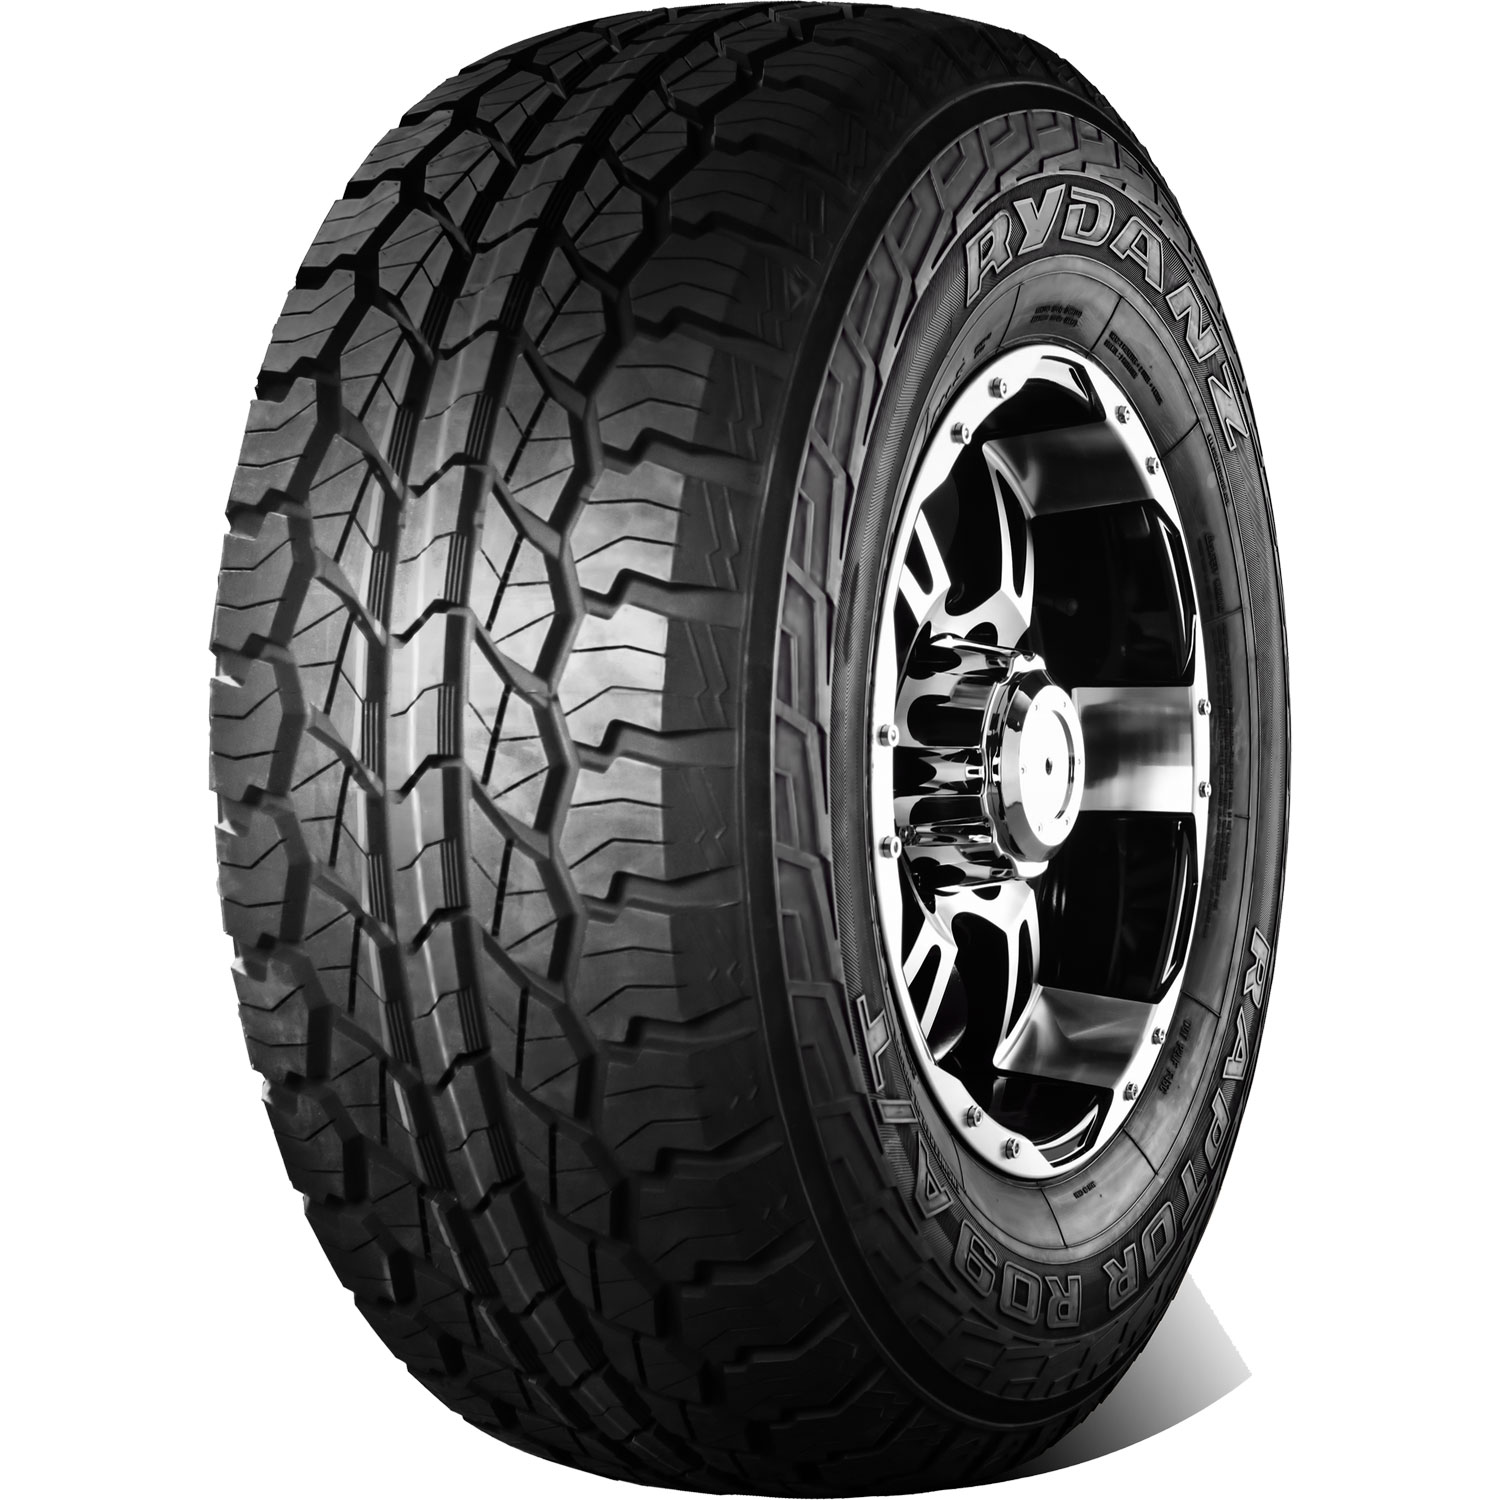 Rydanz Tires Raptor R09 AT Passenger All Season Tire - LT215/75R15 100/97S 6 Ply